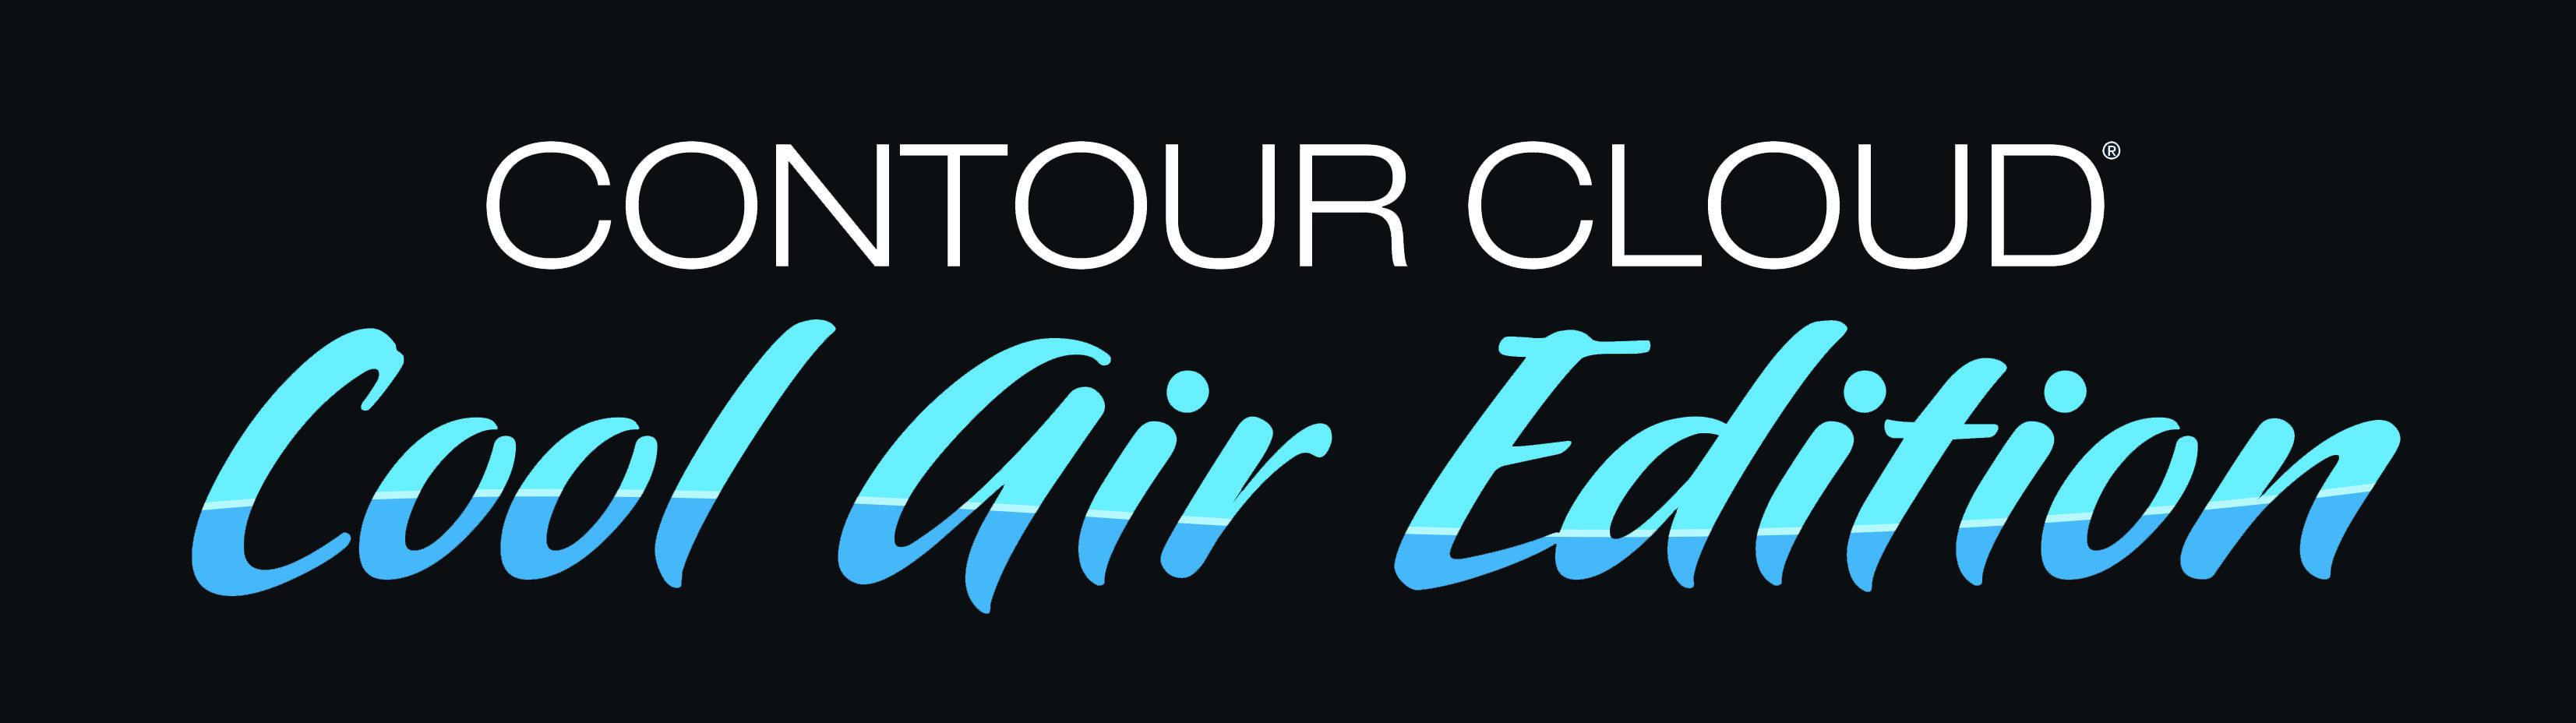 Cool Air Edition Logo